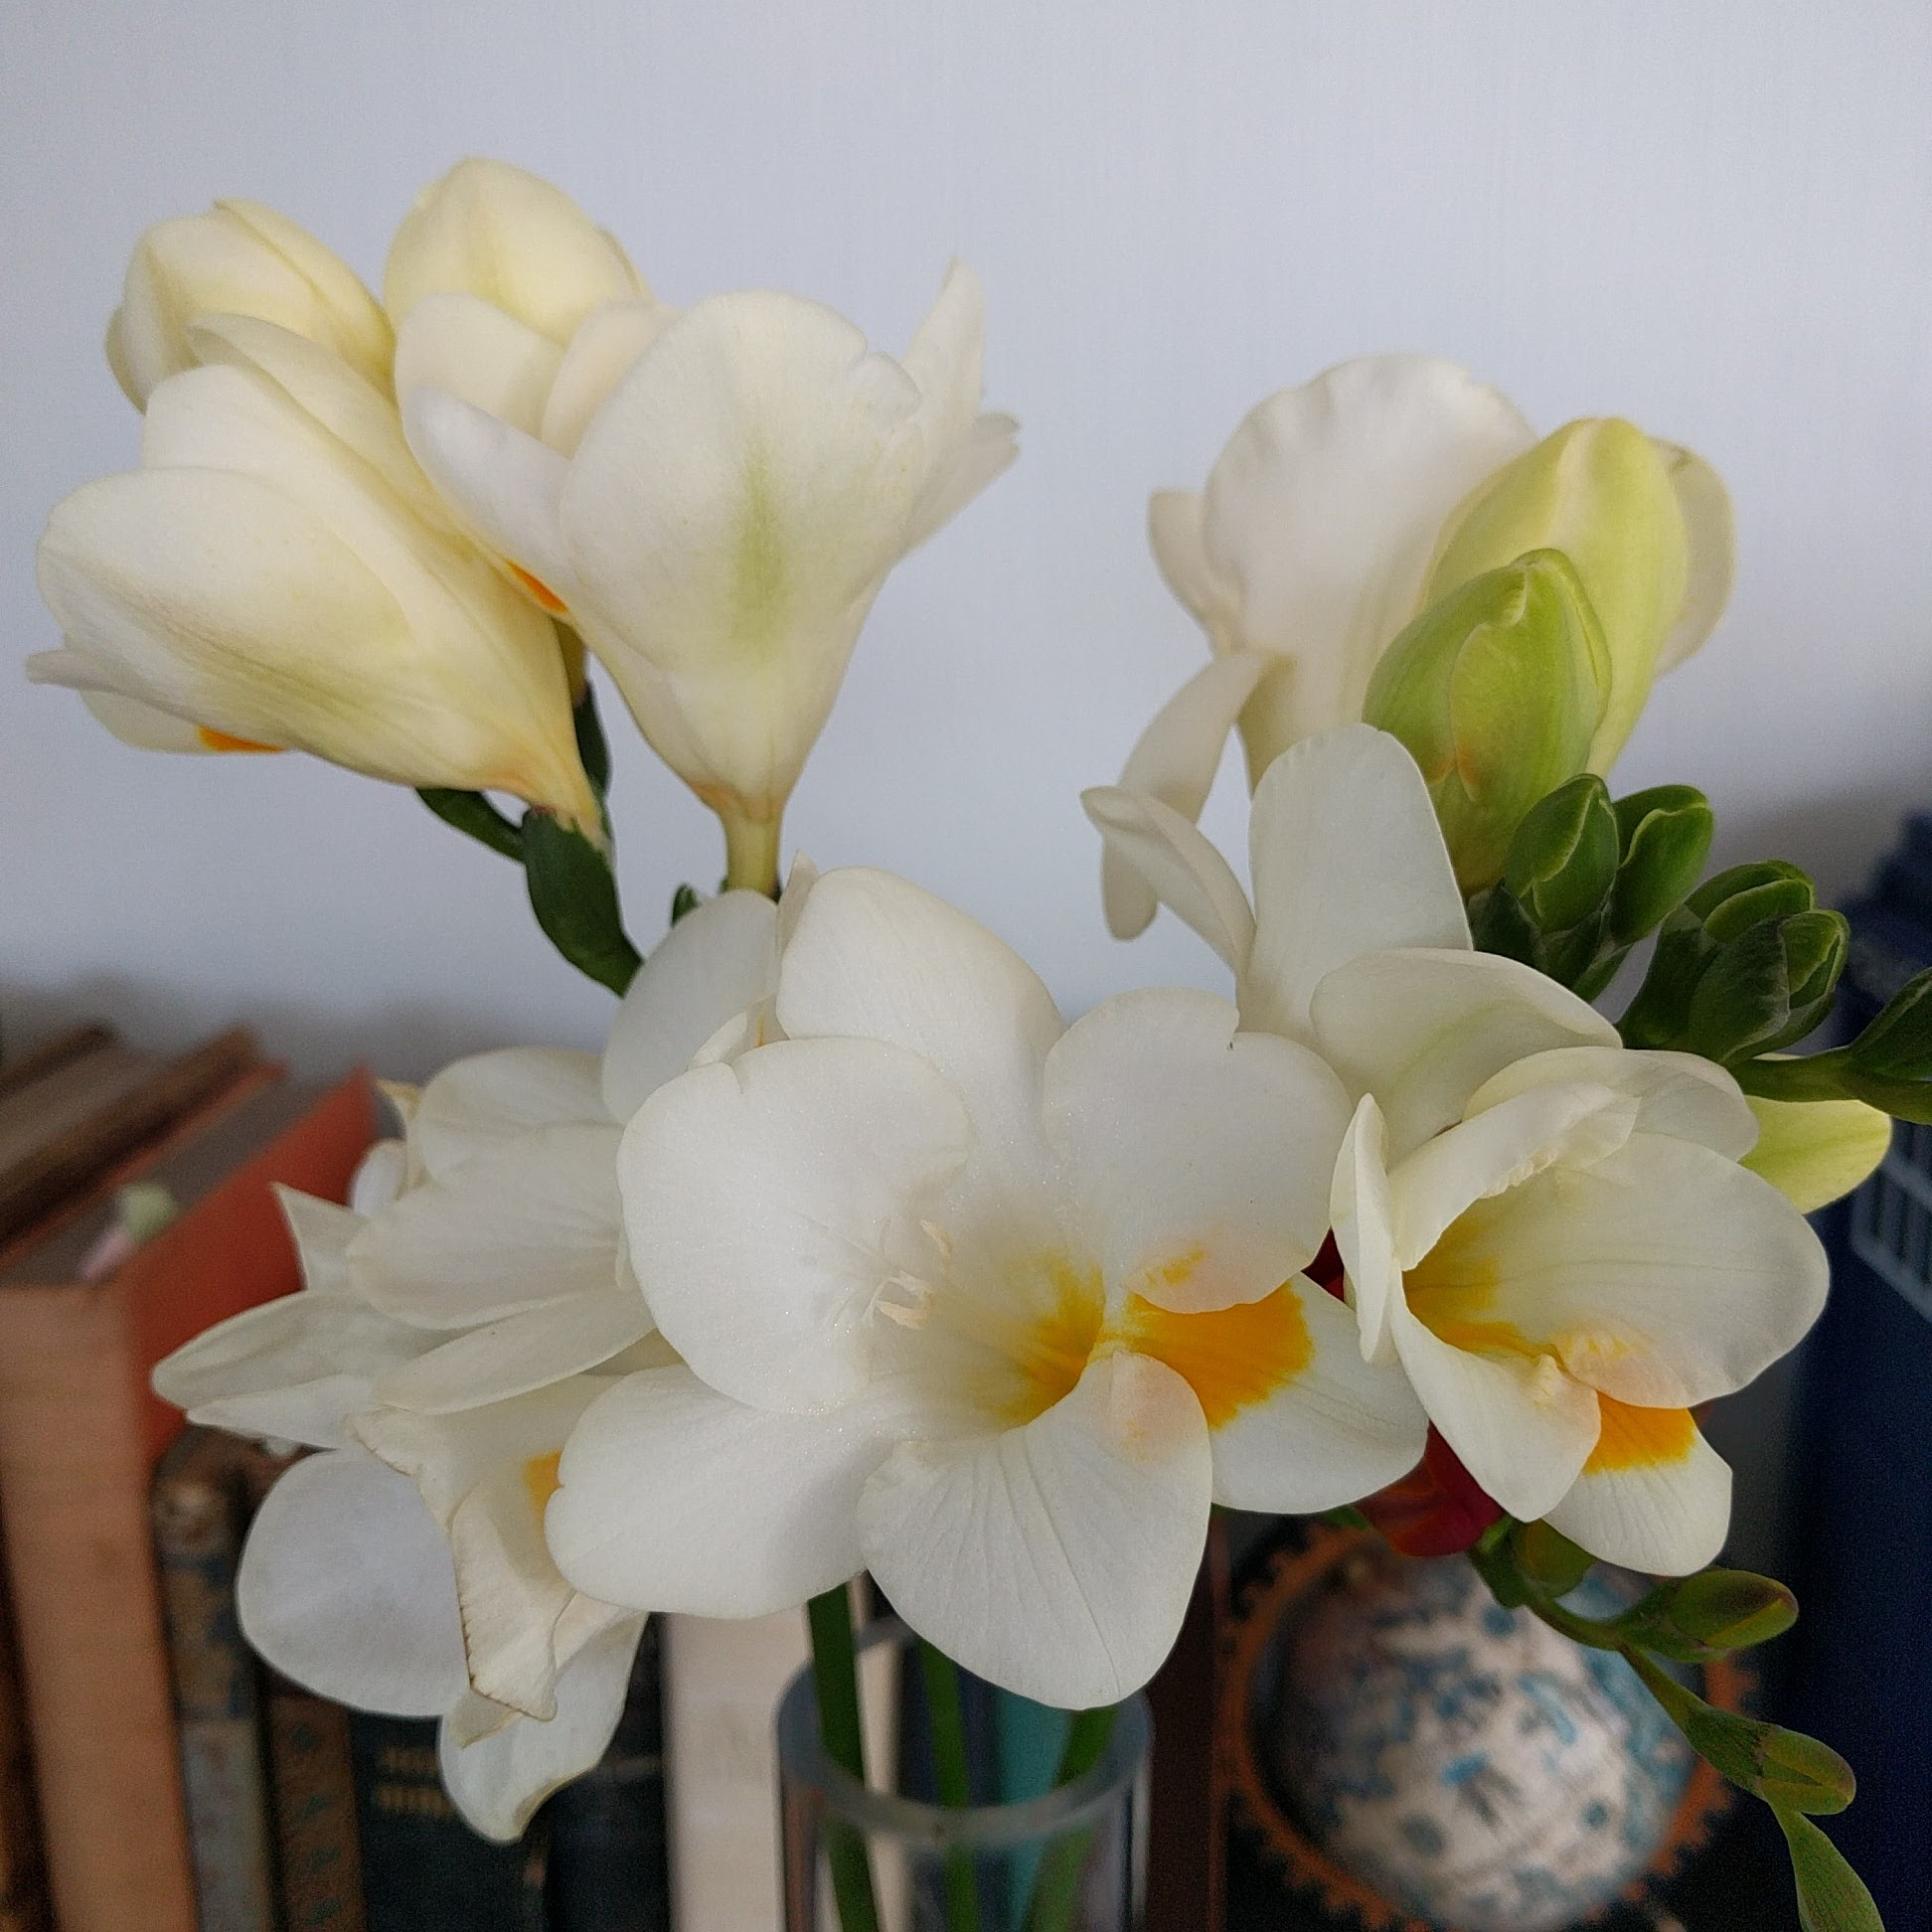 Spring freesias from the garden